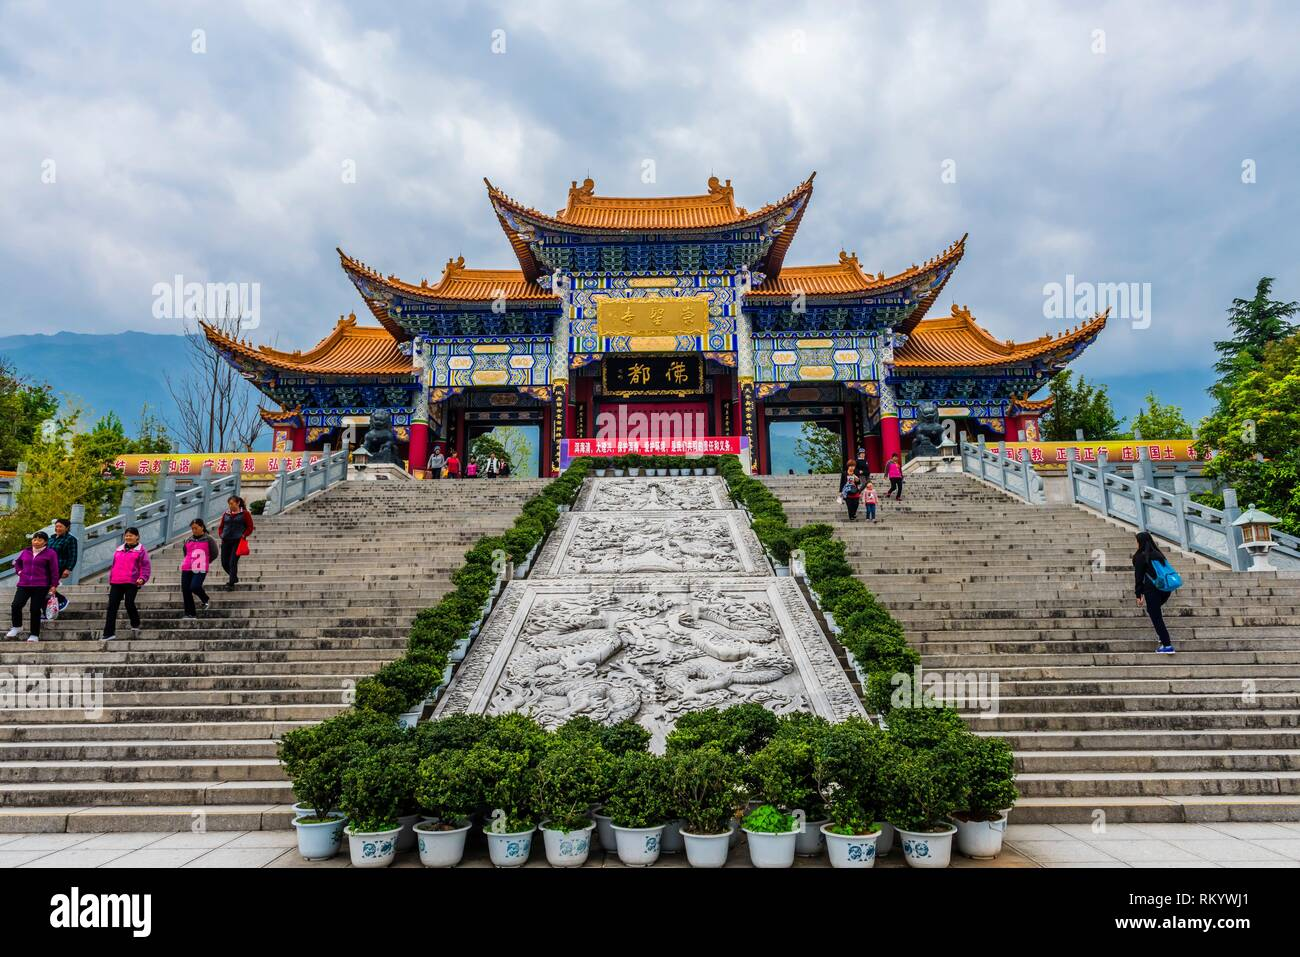 Chongsheng Temple, Dali, Yunnan Province, China. The temple dates from the 9th and 10th centuries. - Stock Image